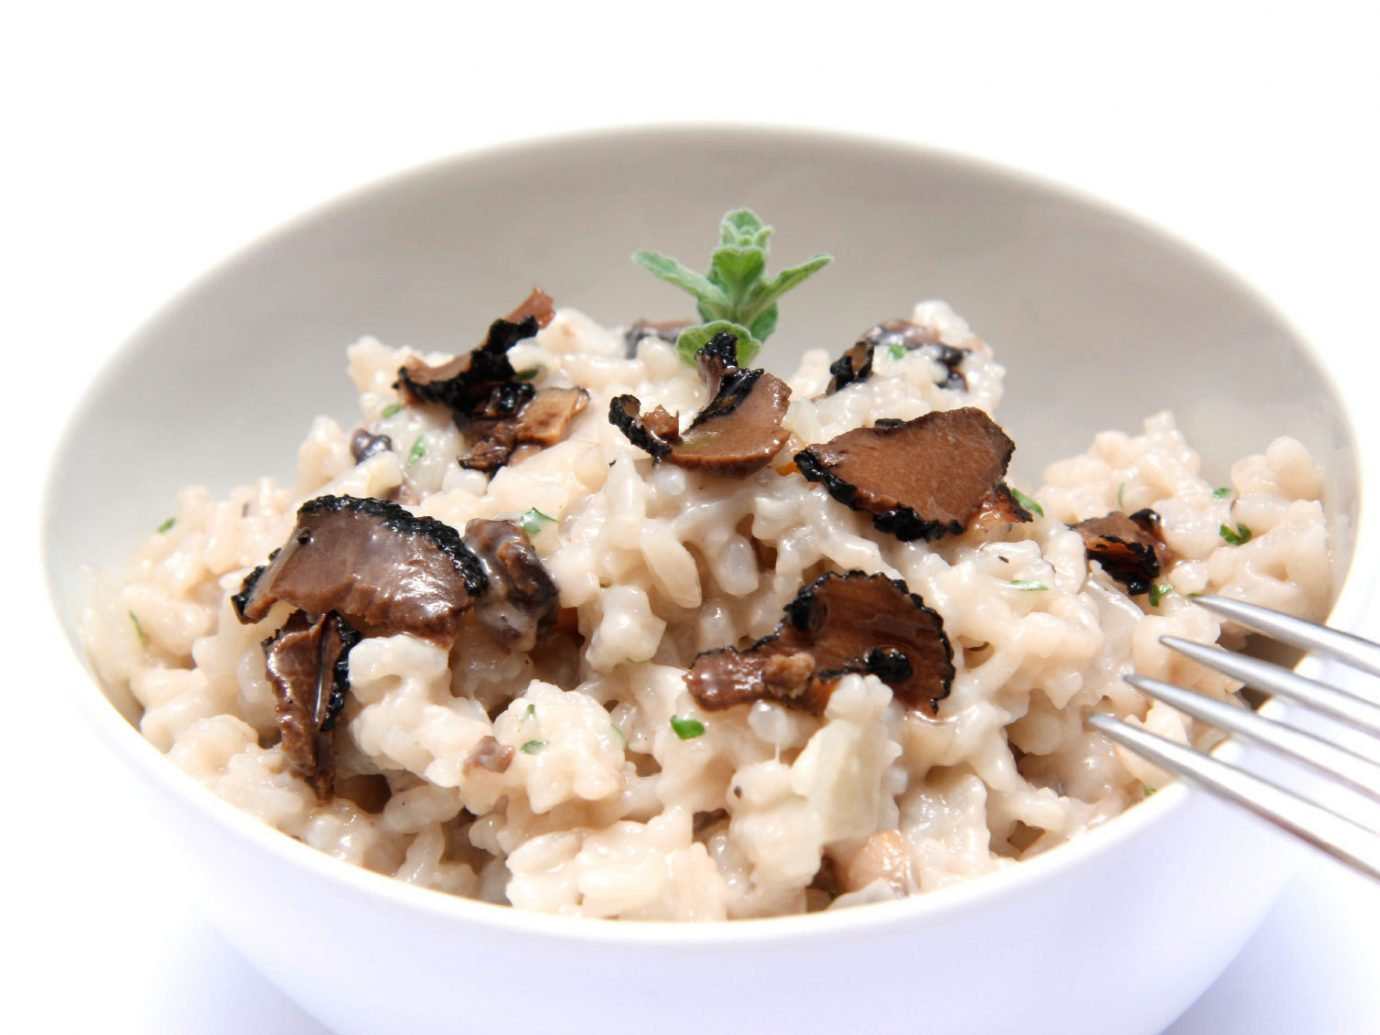 Food + Drink plate food dish white cuisine italian food risotto produce breakfast meal european food vegetarian food meat